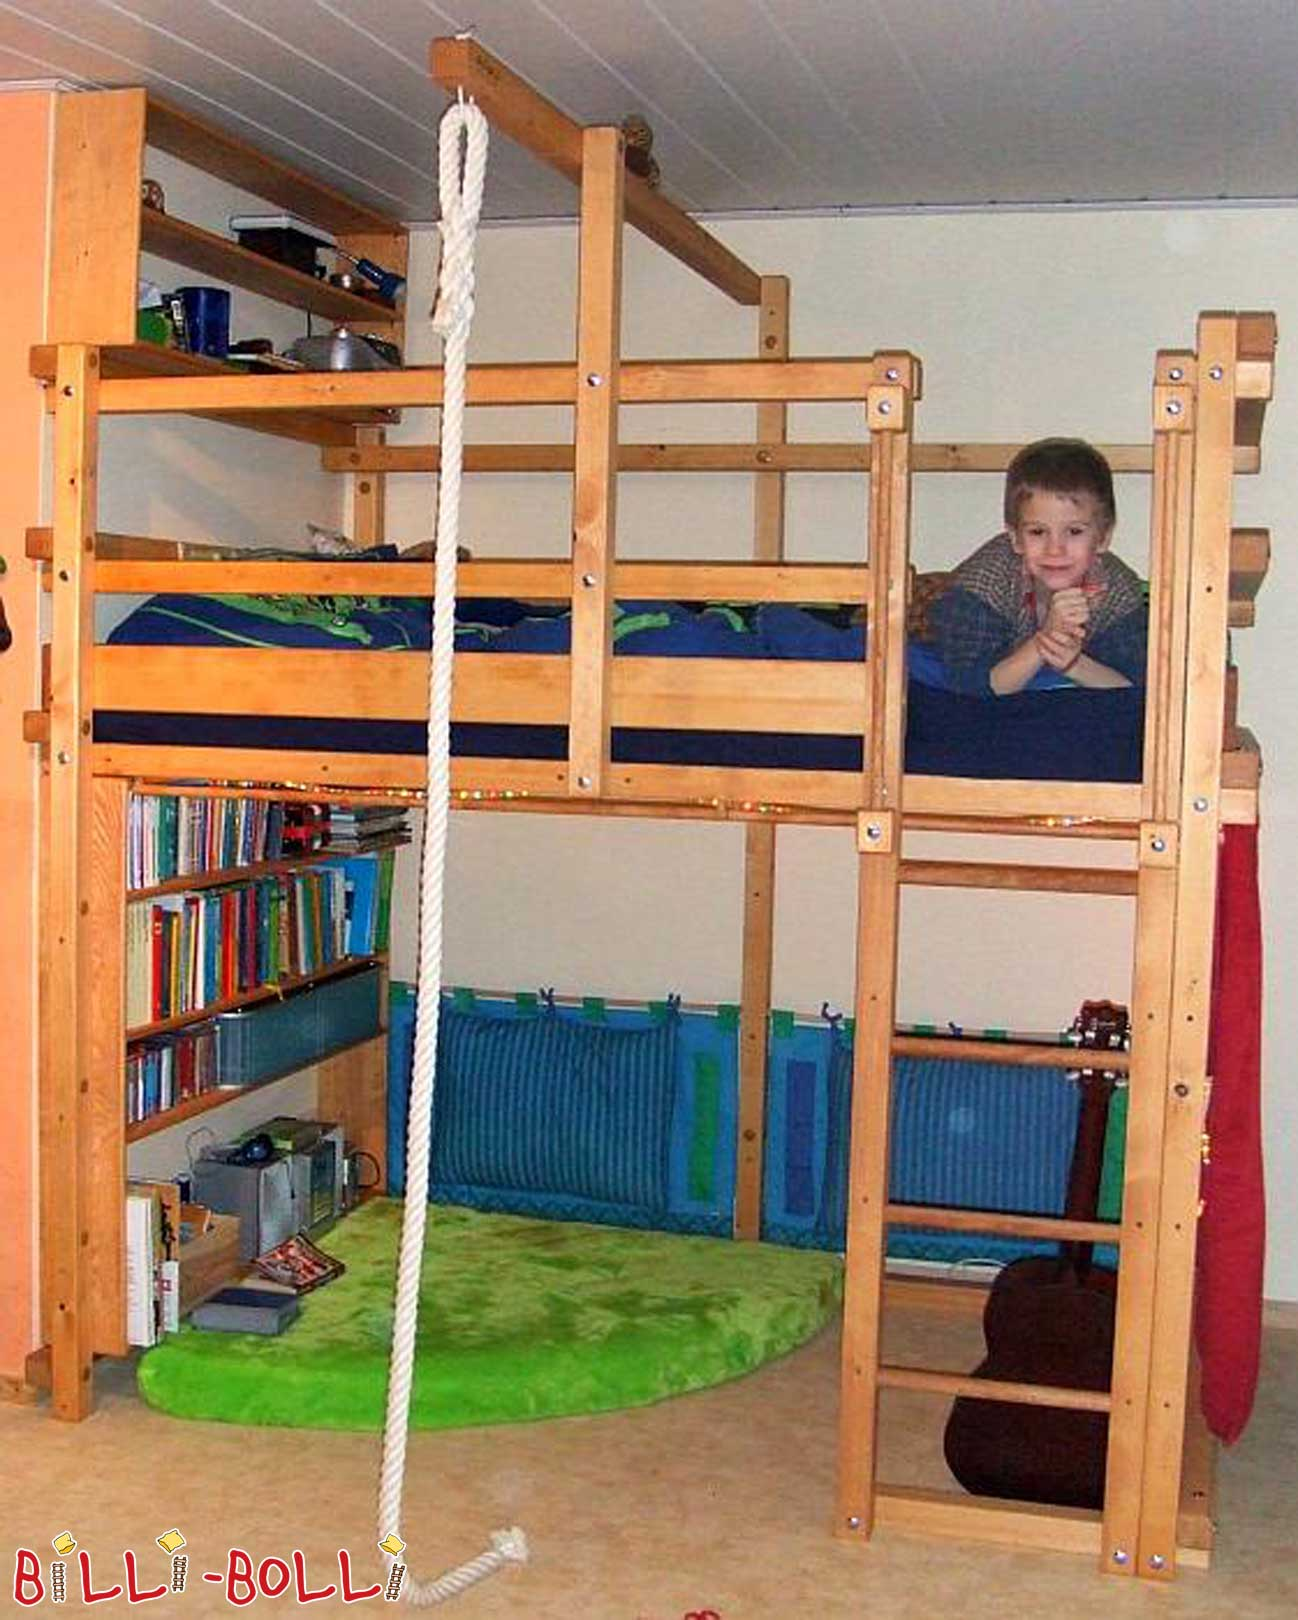 Billi-Bolli with growing bunk bed (second hand loft bed)